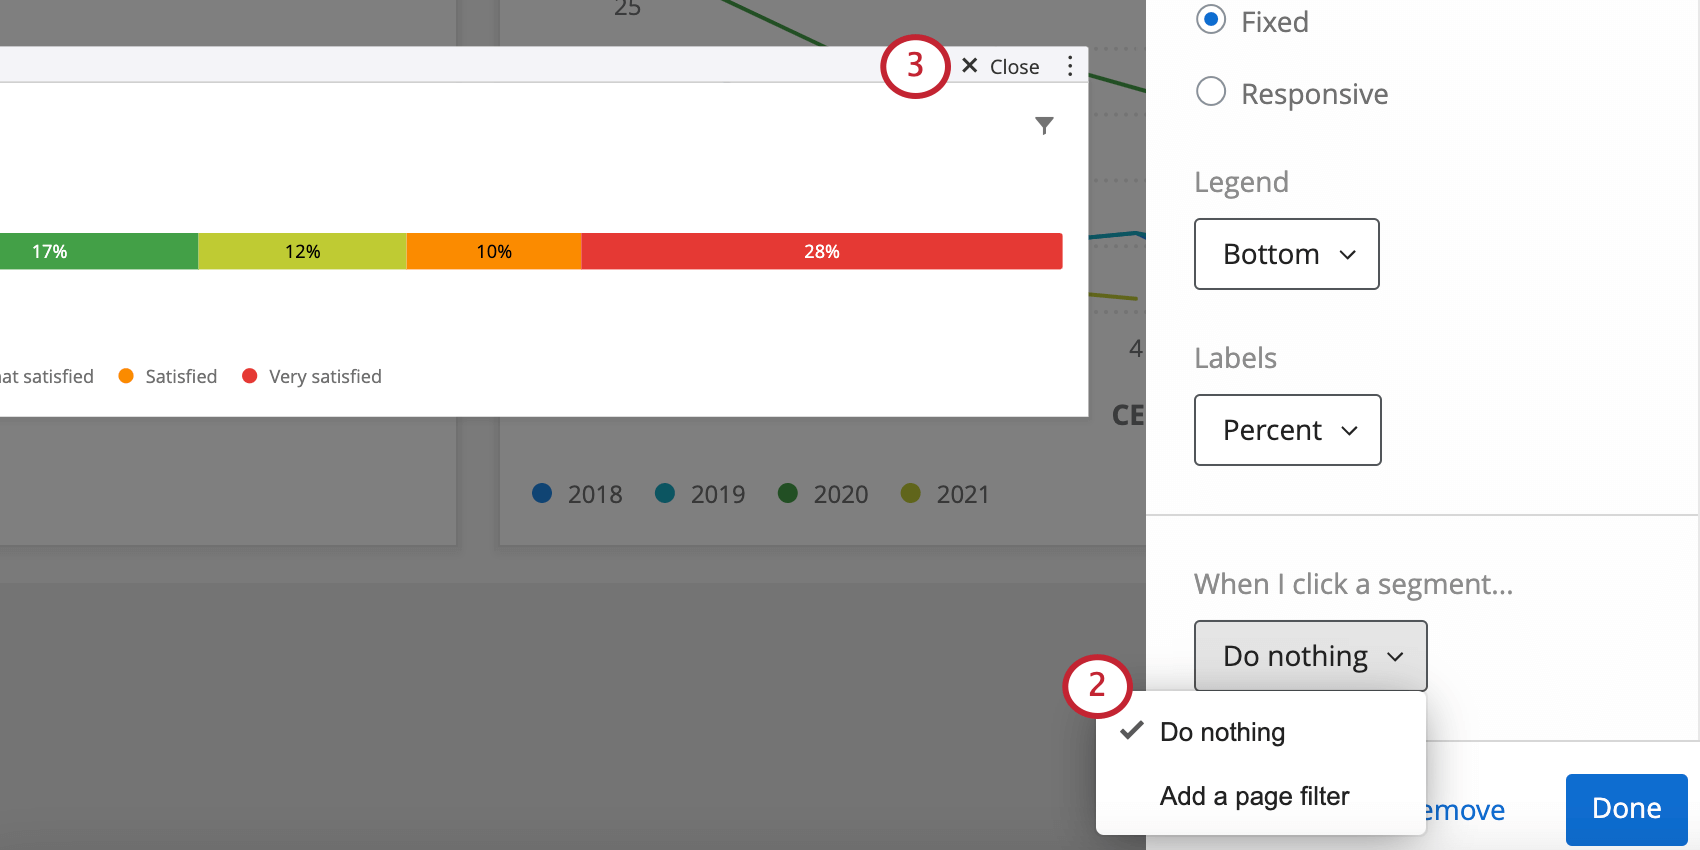 Bottom of widget editing pane, the option described can be found. Meanwhile, close button is in upper-right of widget